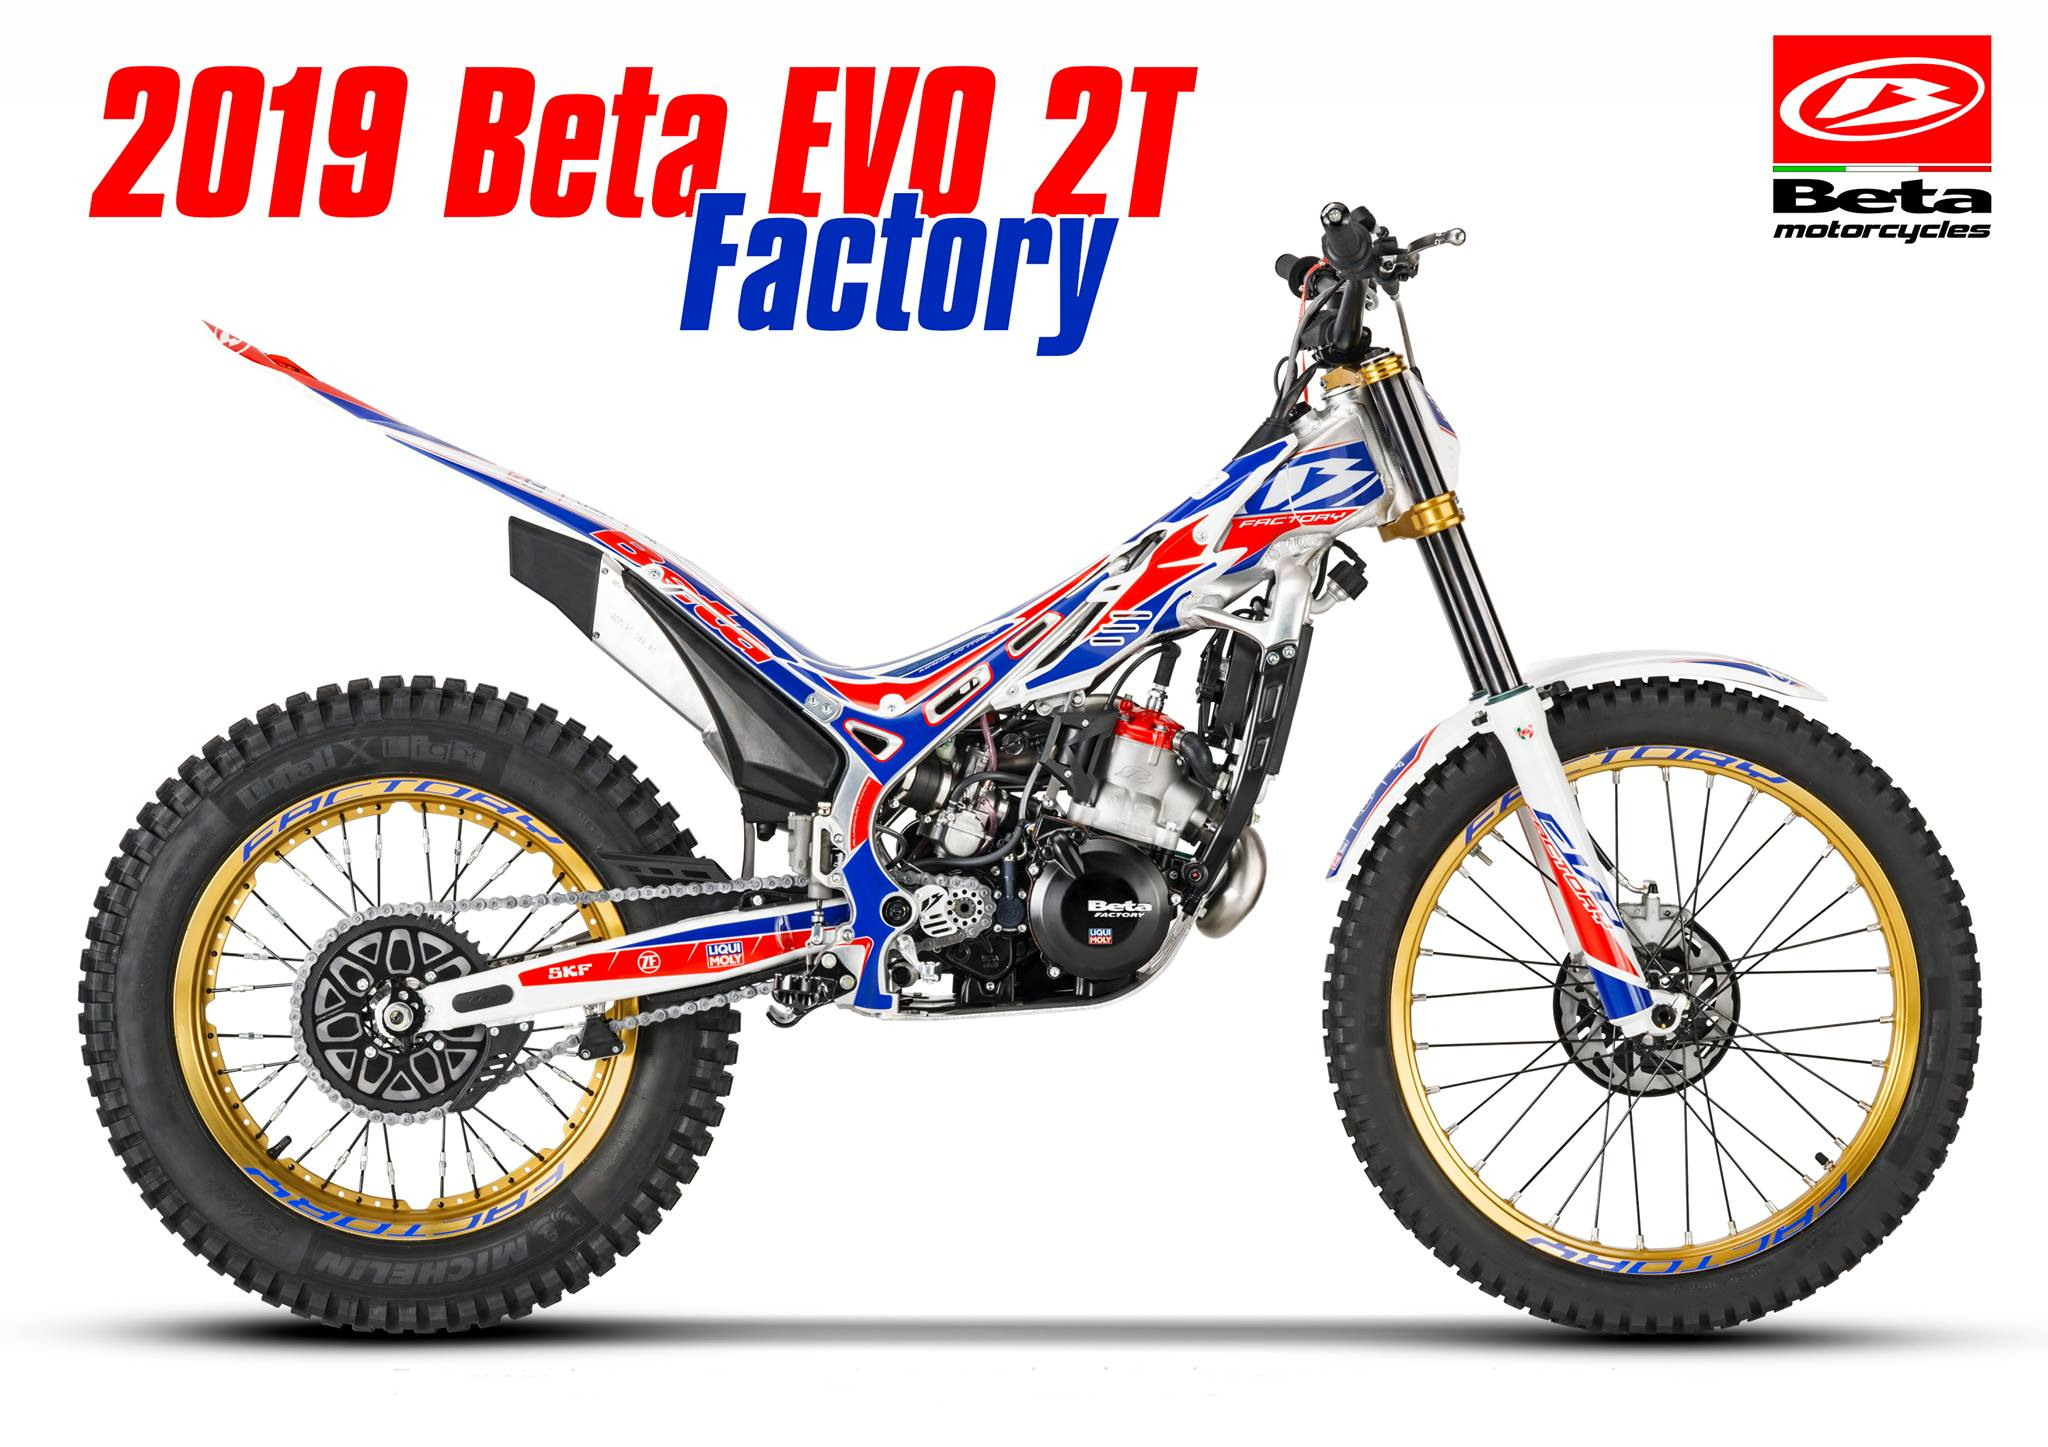 BETA EVO Factory 2019